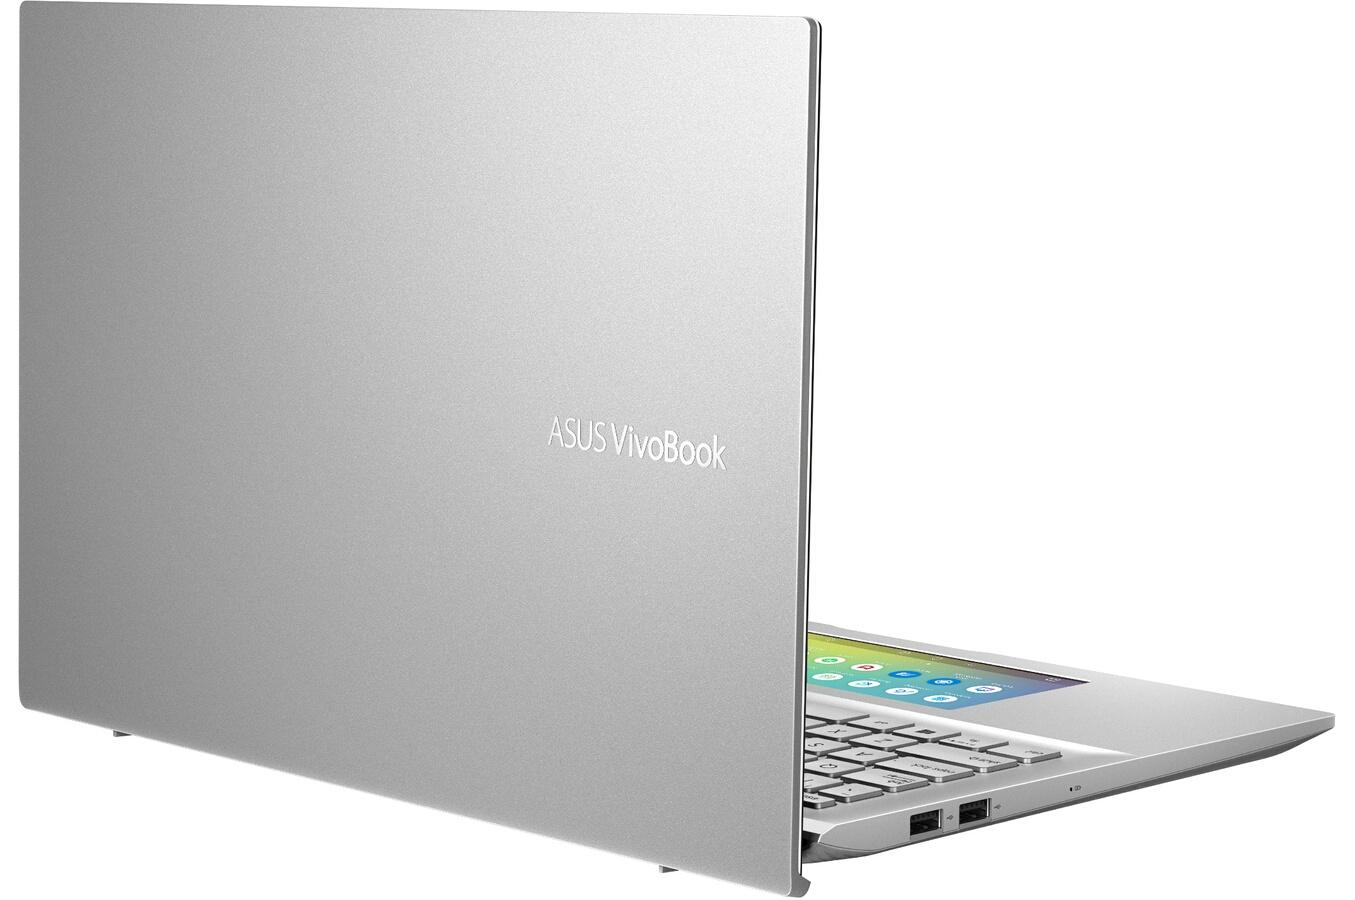 Ordinateur portable Asus Vivobook S532FA-BQ021T Argent - ScreenPad 2.0, SSD 1 To - photo 6